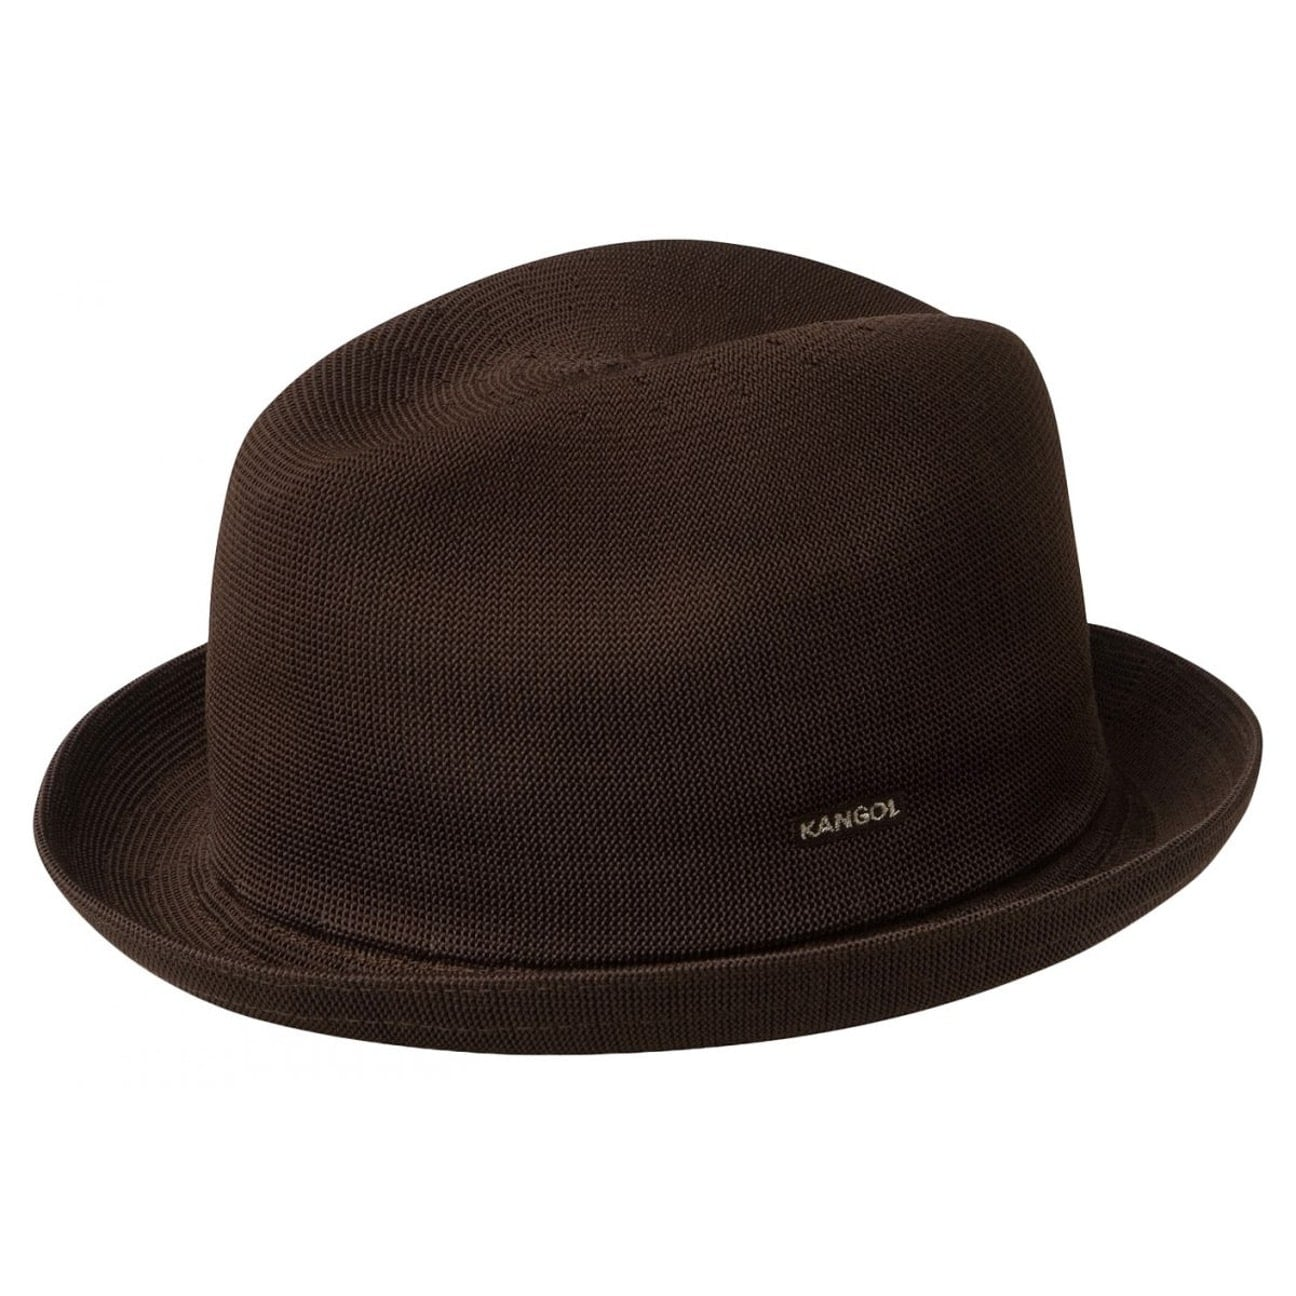 b00c948e921 ... bordeaux 4 · Kangol Tropic Player Hat - brown 1 ...